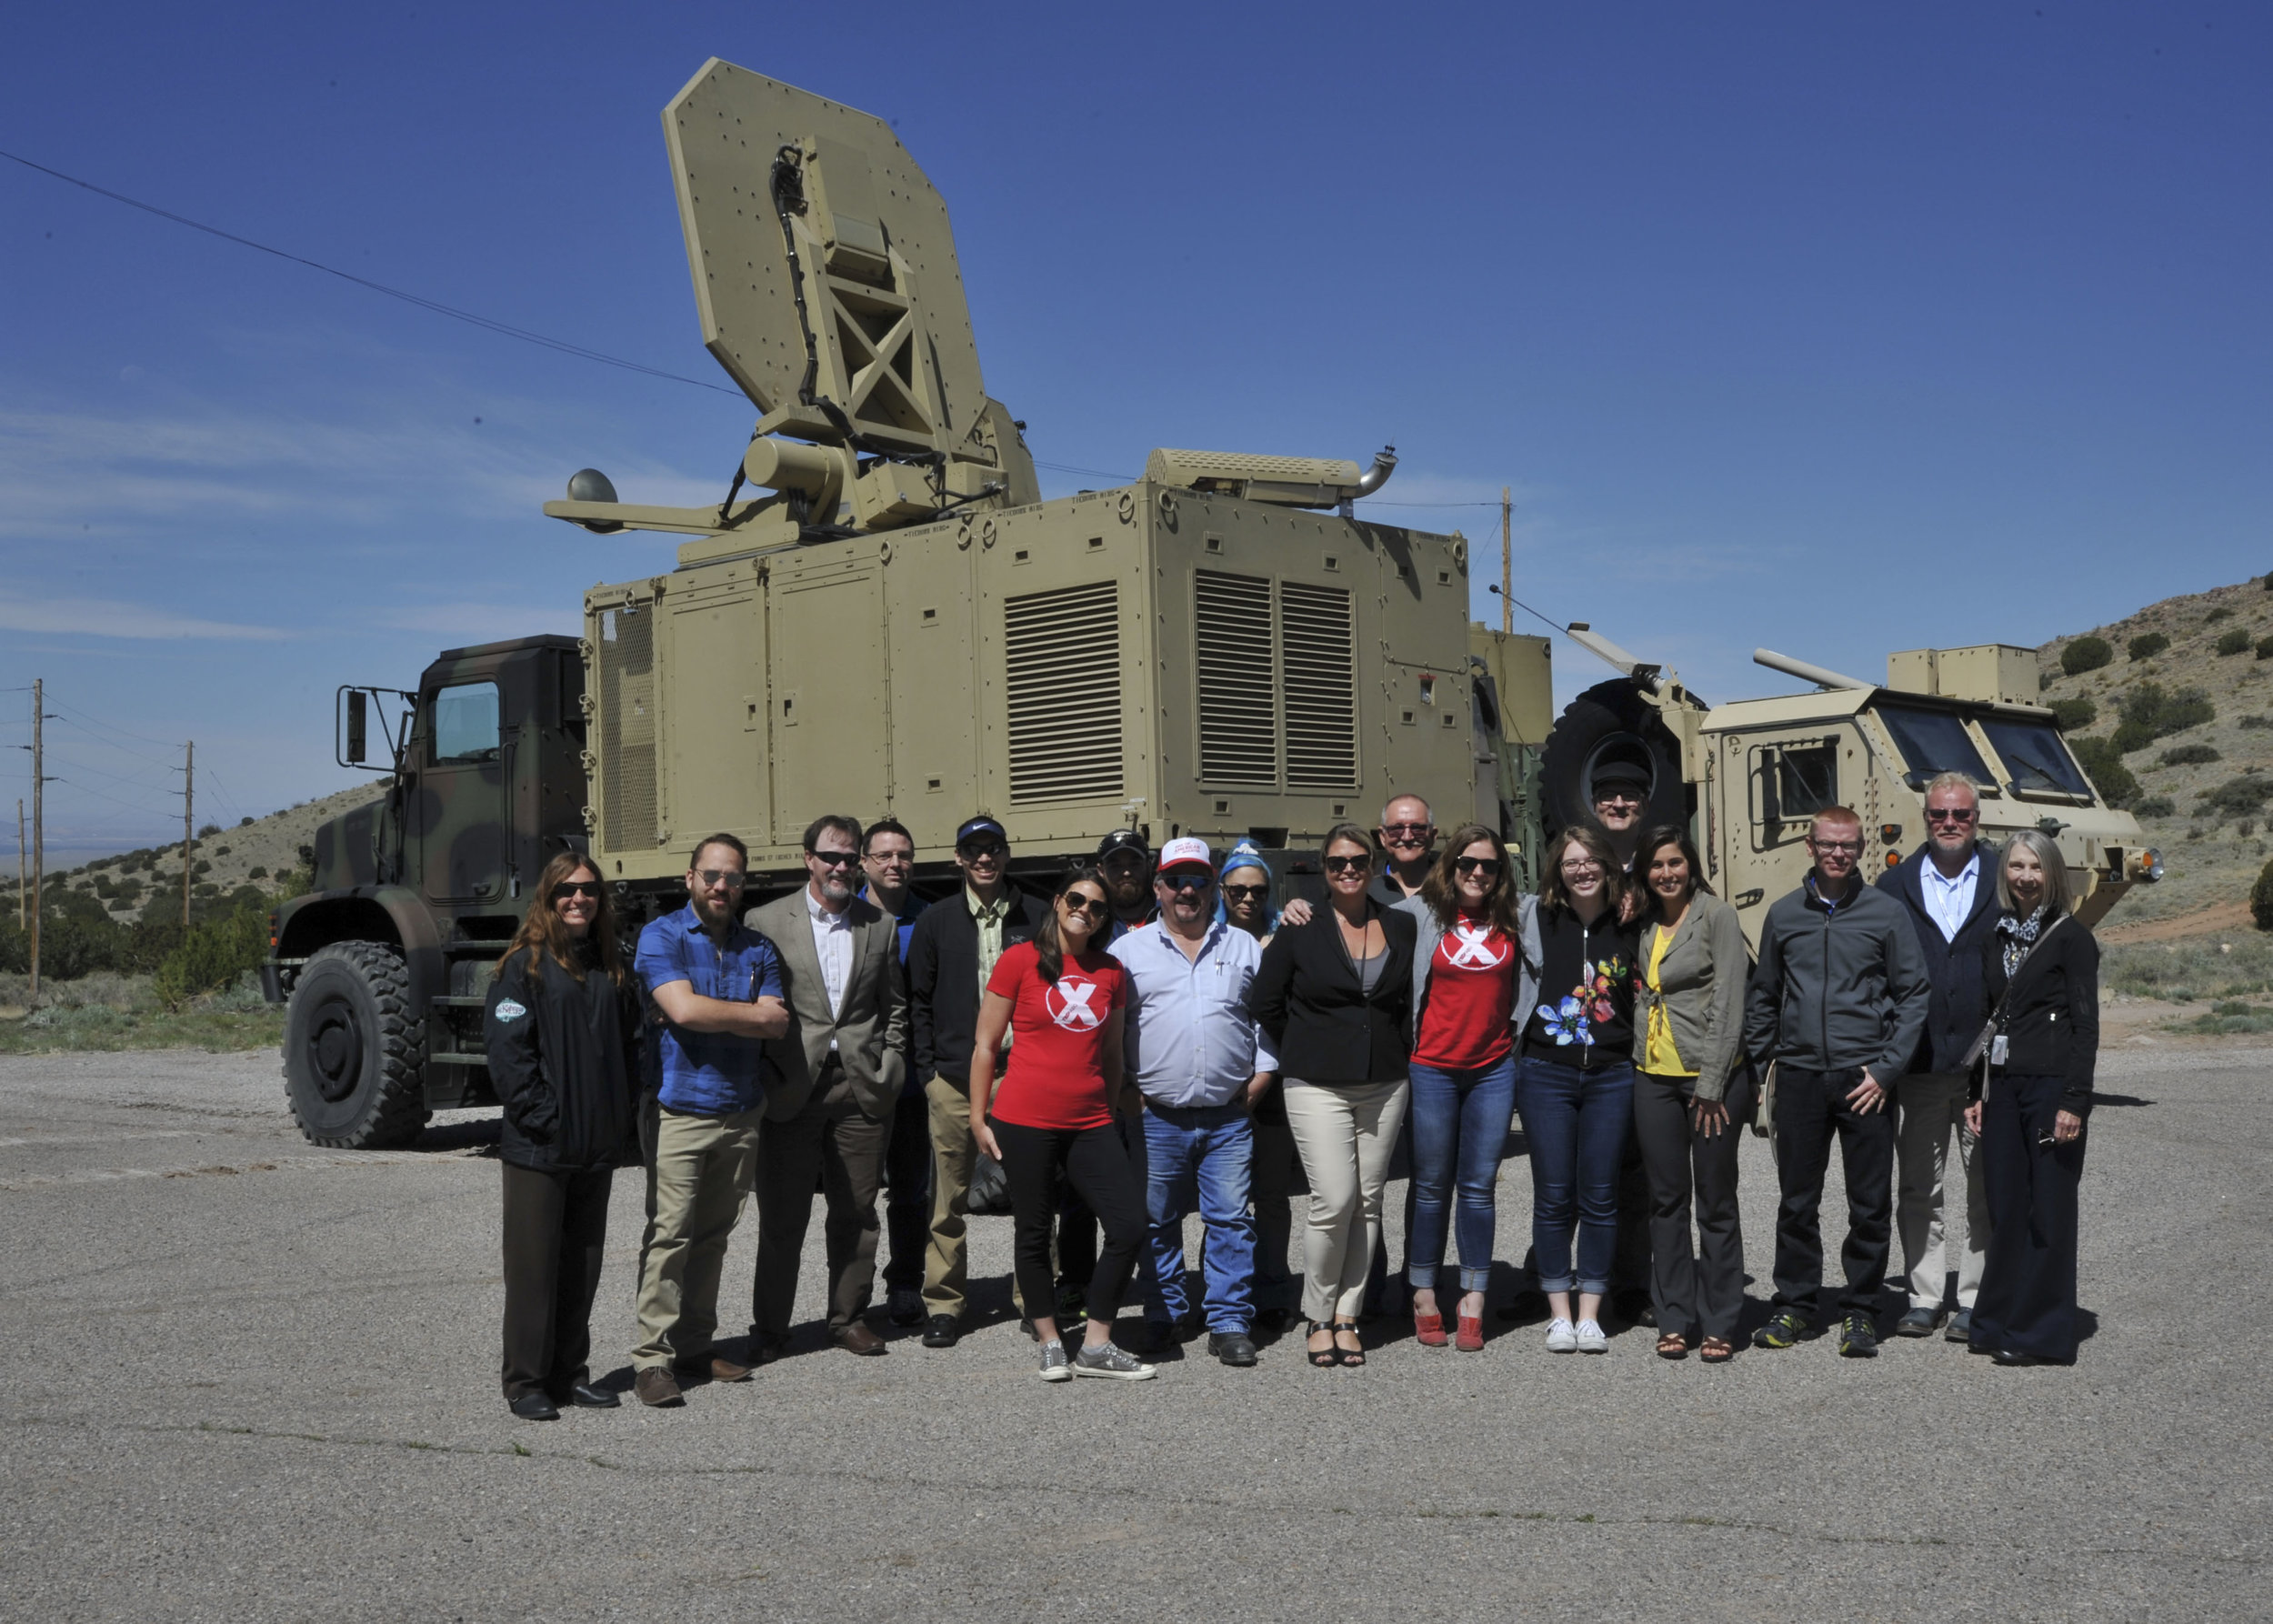 Local community members along with TEDX ABQ members take a photo in front of an active denial truck at Kirtland Air Force Base, New Mexico, May 17. Visitors spent the day learning about high power electromagnetics division technology which is often misrepresented via myth or social media.